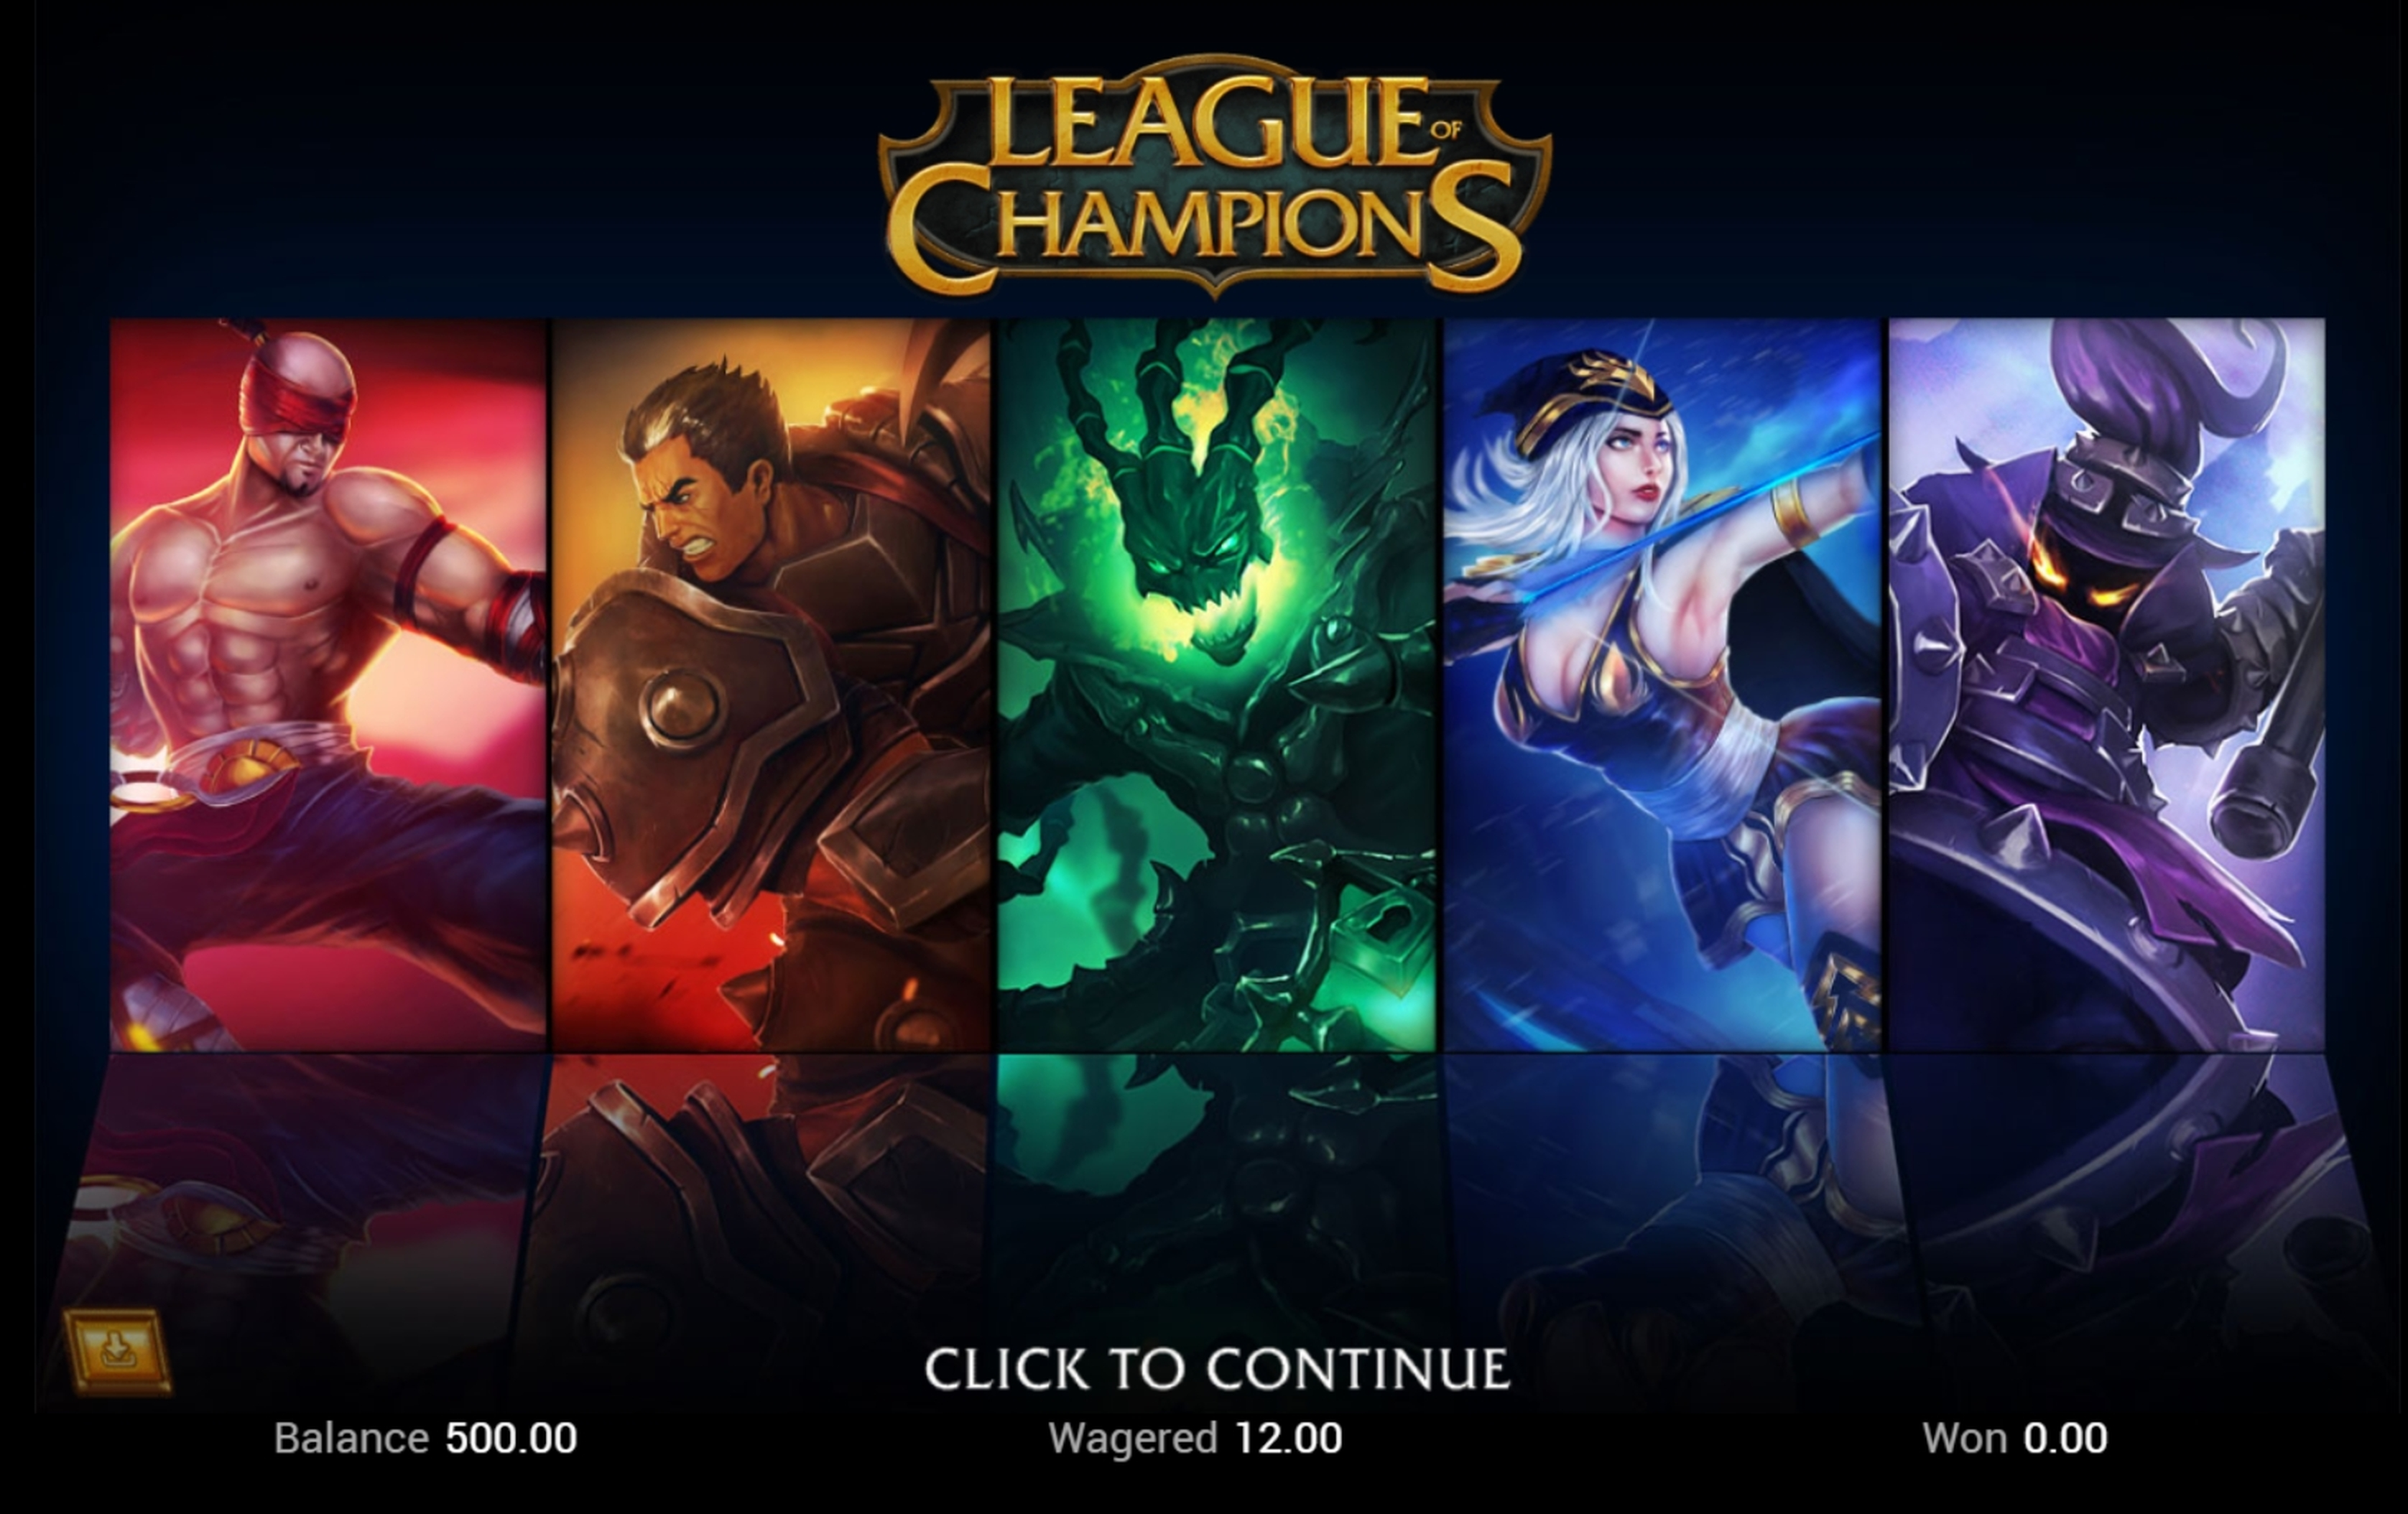 Play League Of Champions Free Casino Slot Game by Top Trend Gaming